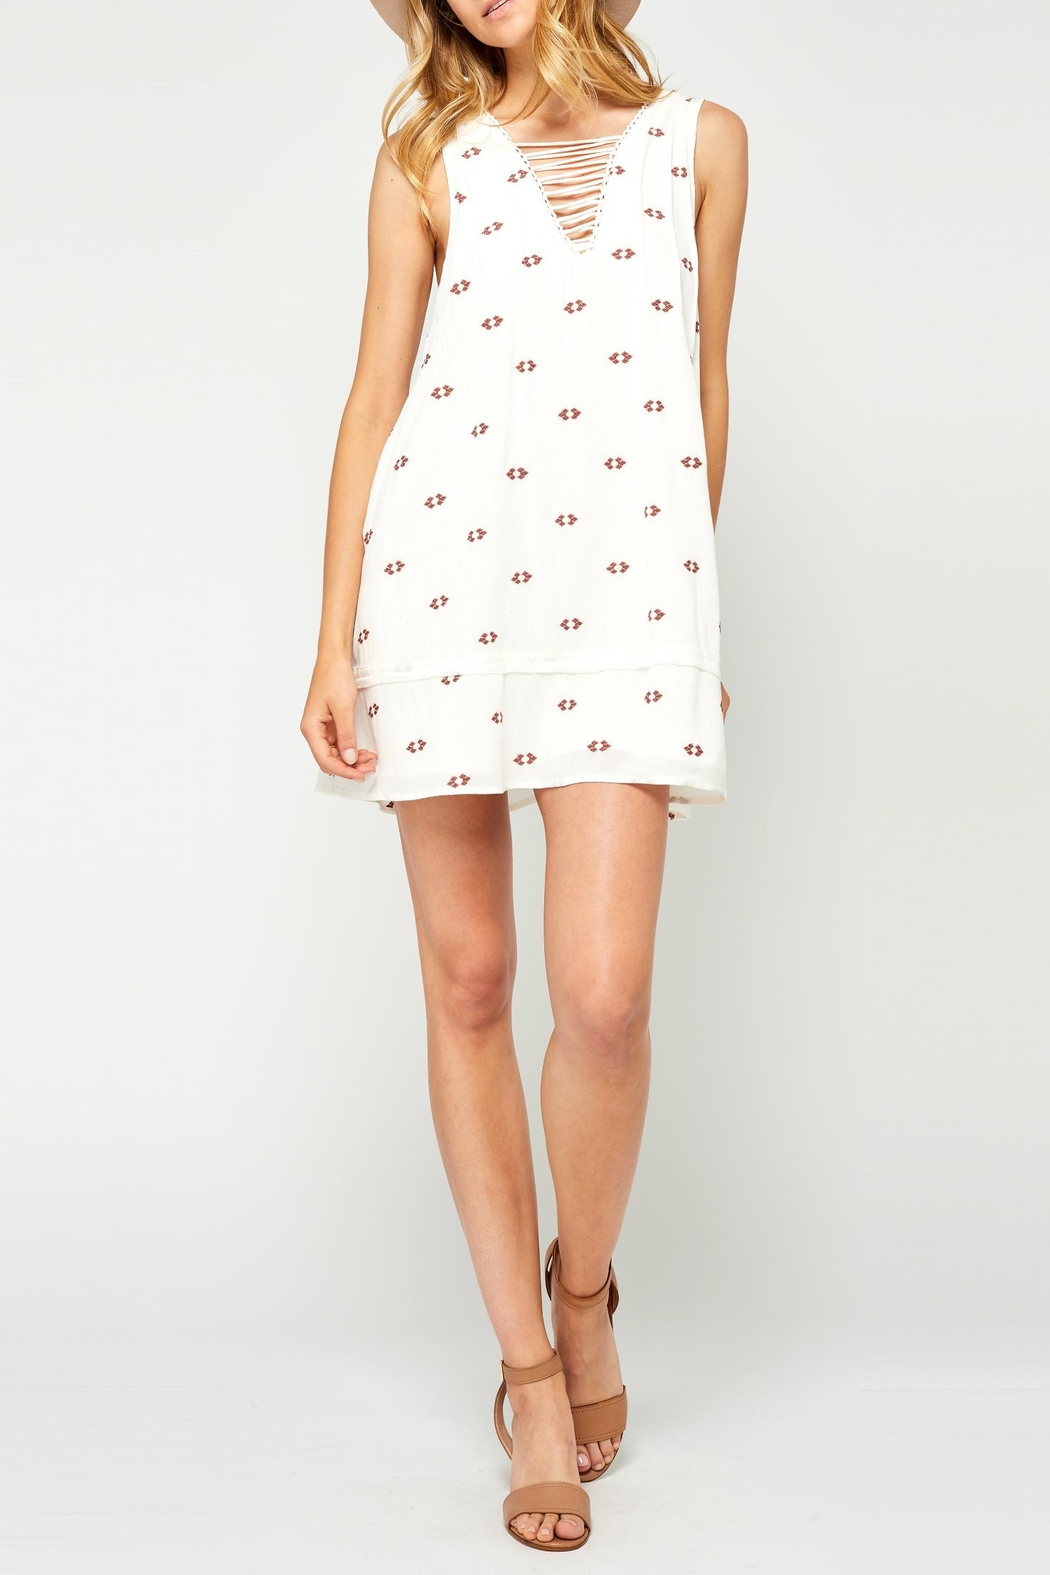 Gentle Fawn Little White Dress from Ontario by Steel Style Garage ... 0130803e1